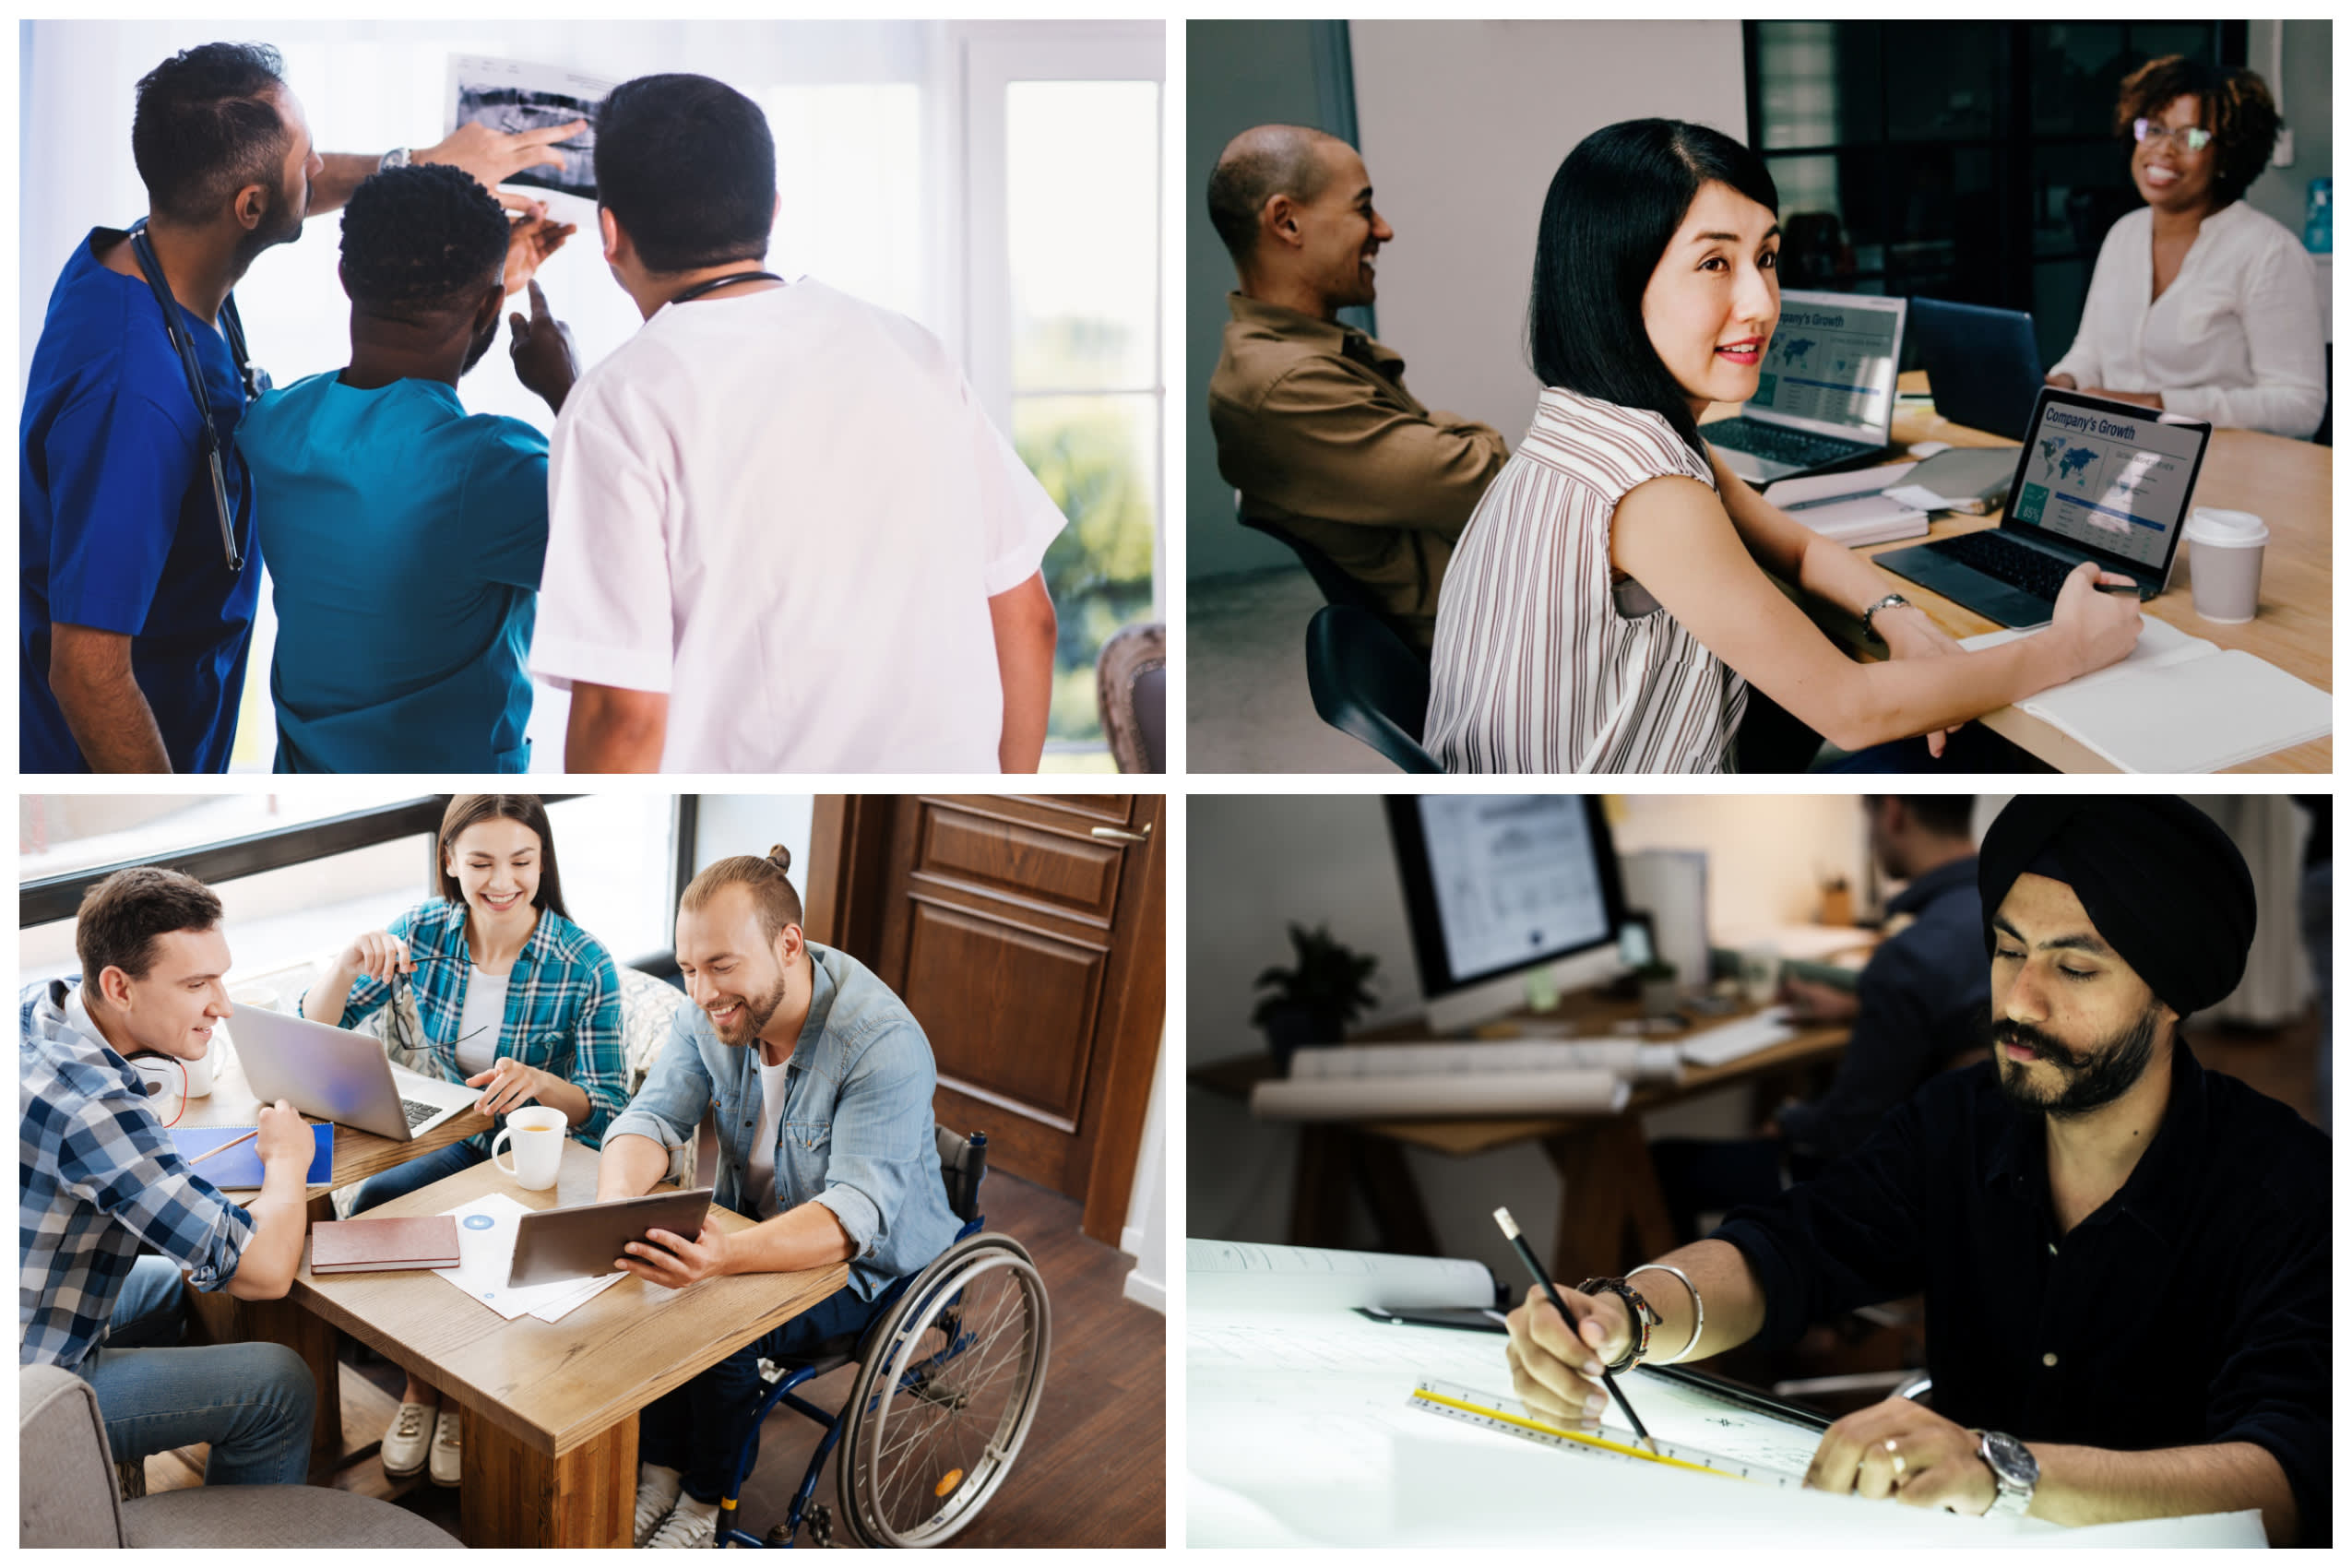 A montage of images showing workplace diversity, including gender, physical ability, and ethnic background.